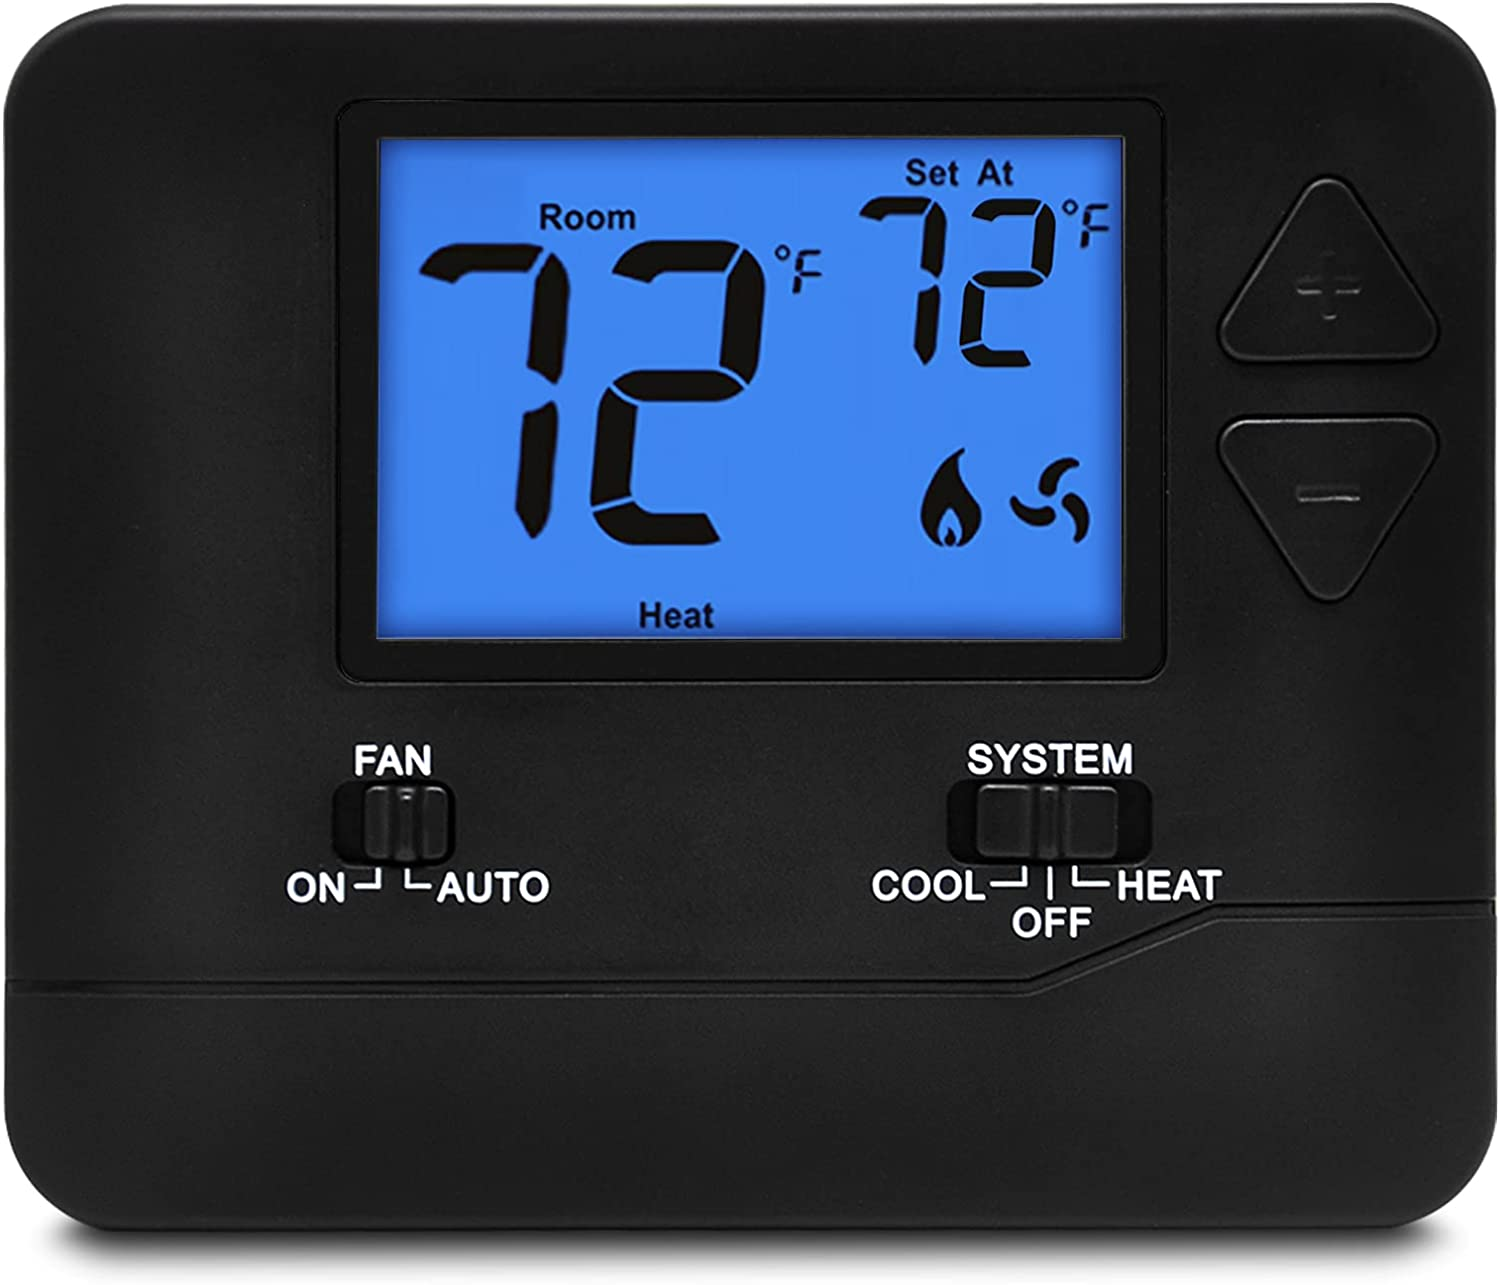 ELECTECK Digital Thermostat with Large LCD Display, Non-Programmable, Compatible with Single Stage Electrical and Gas/Oil System, Up to 1 Heat/1 Cool, Black